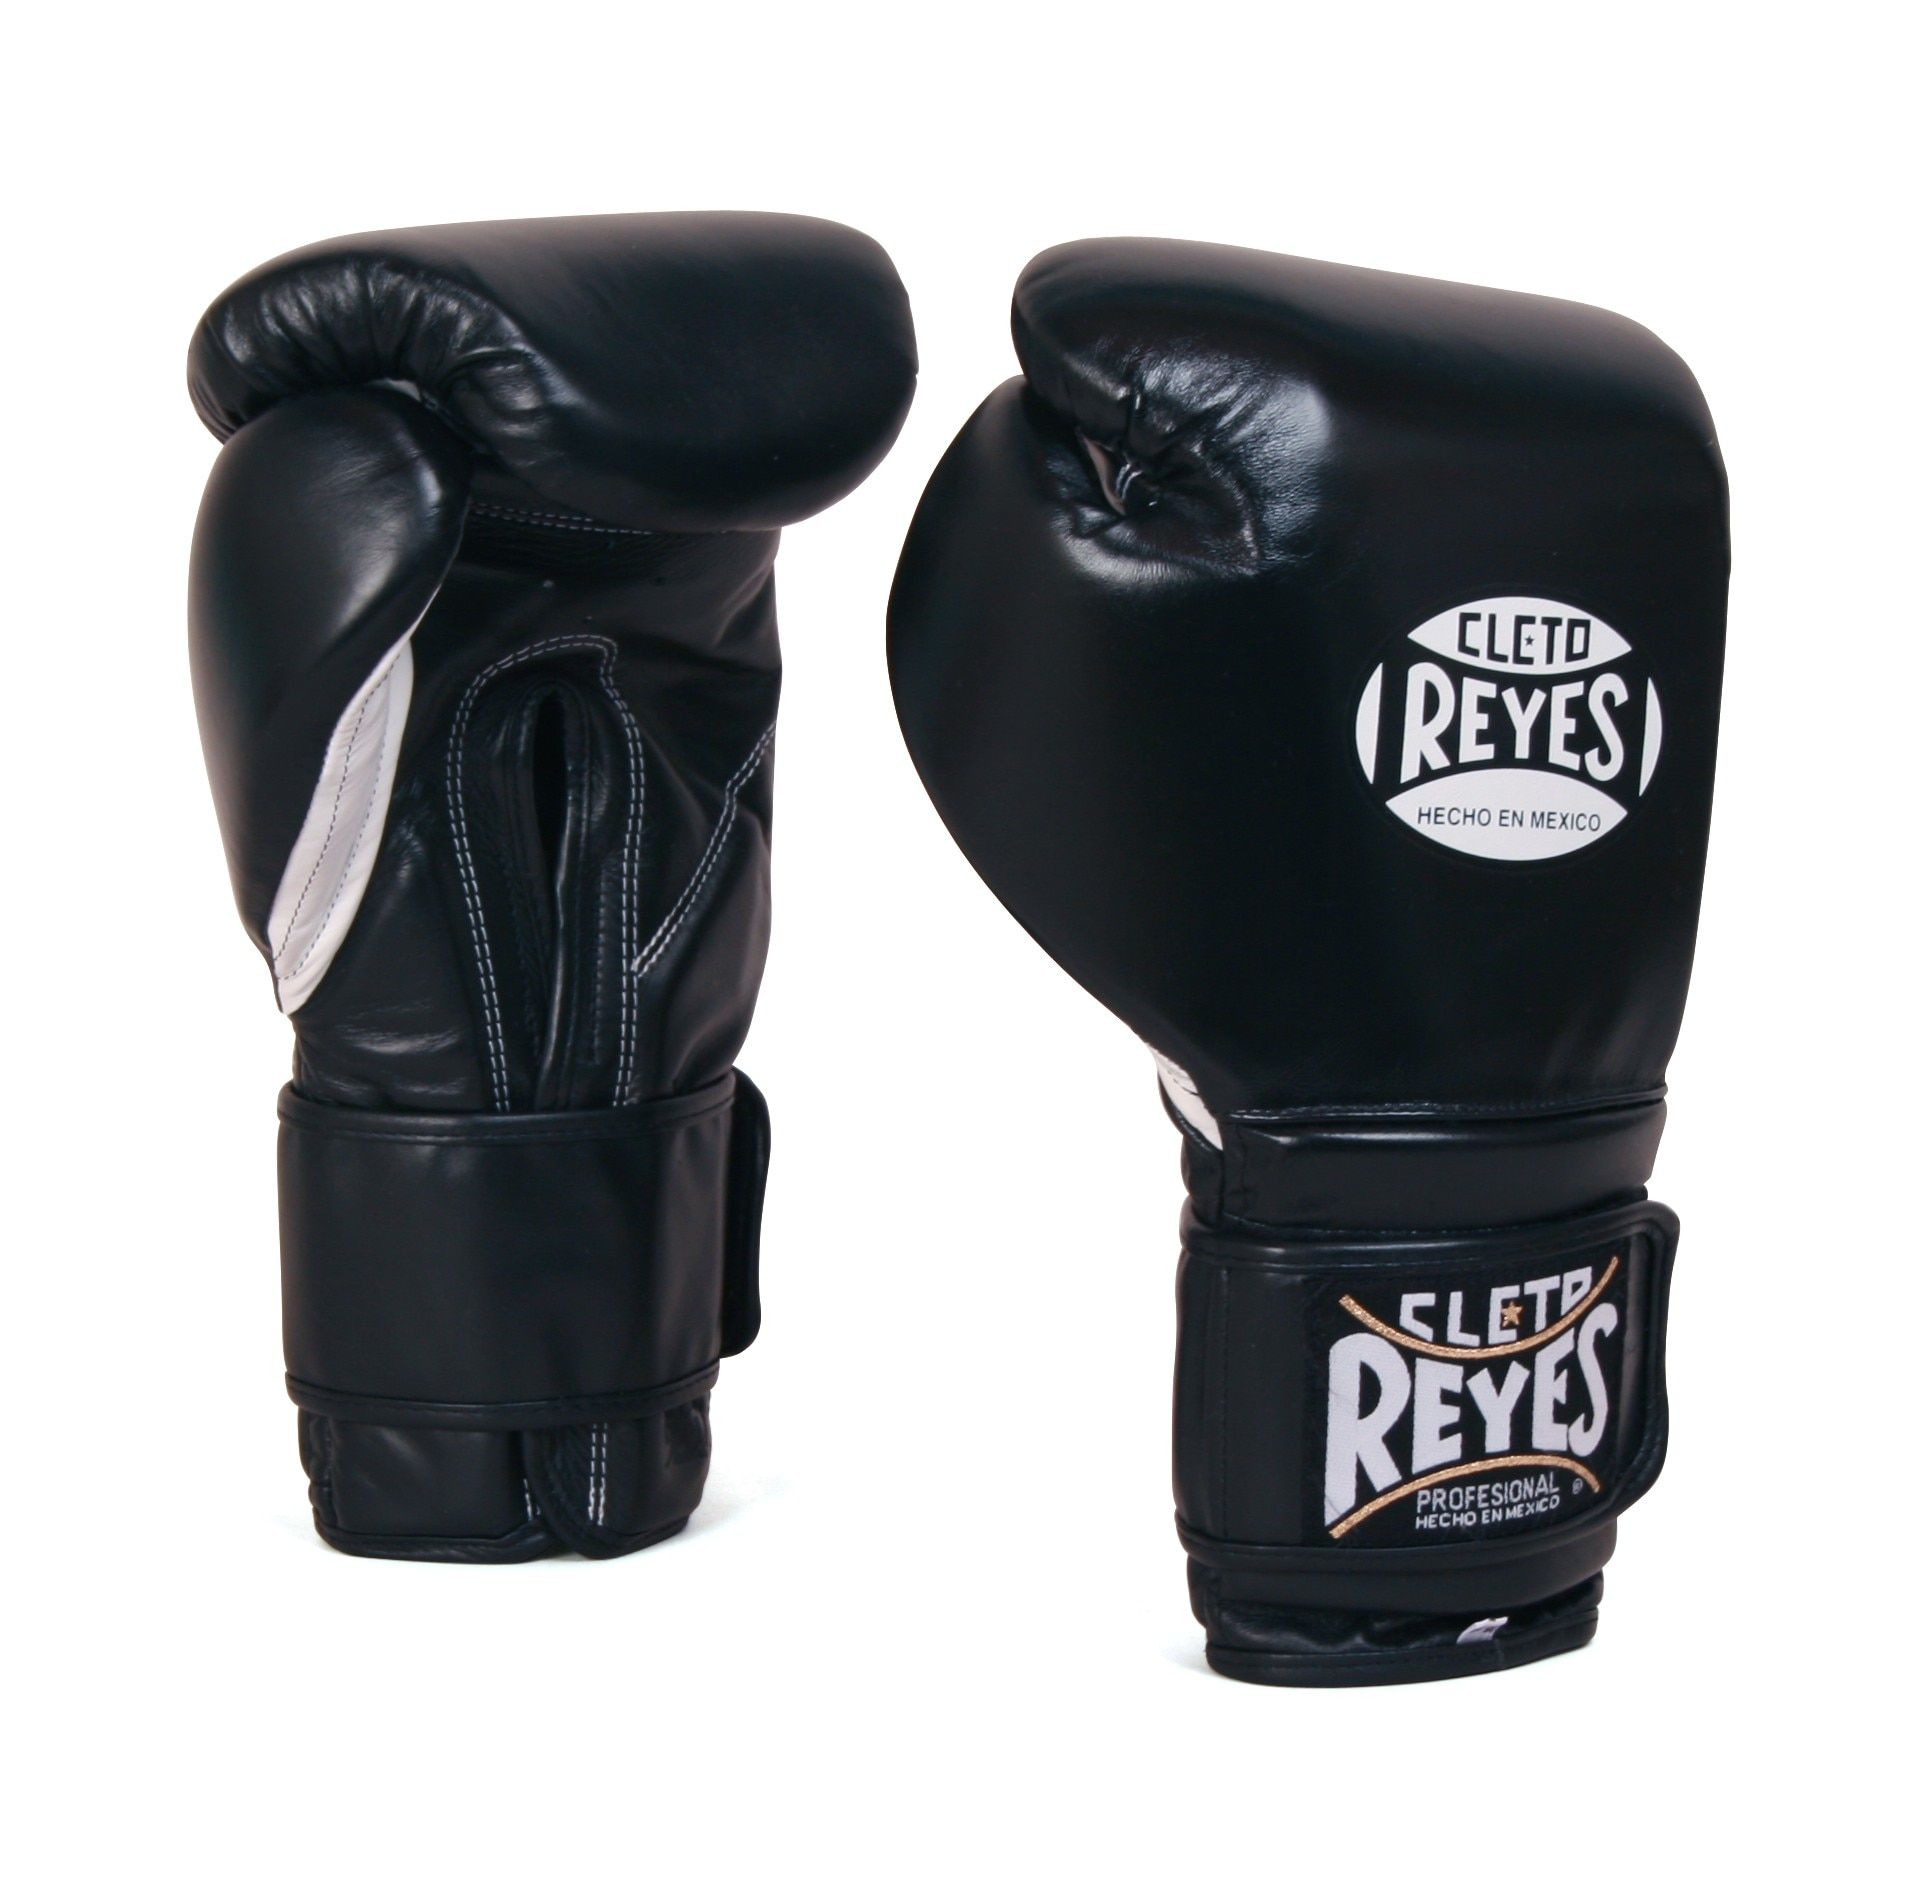 Black Cleto Reyes Professional Lace Up Sparring Training Boxing Gloves